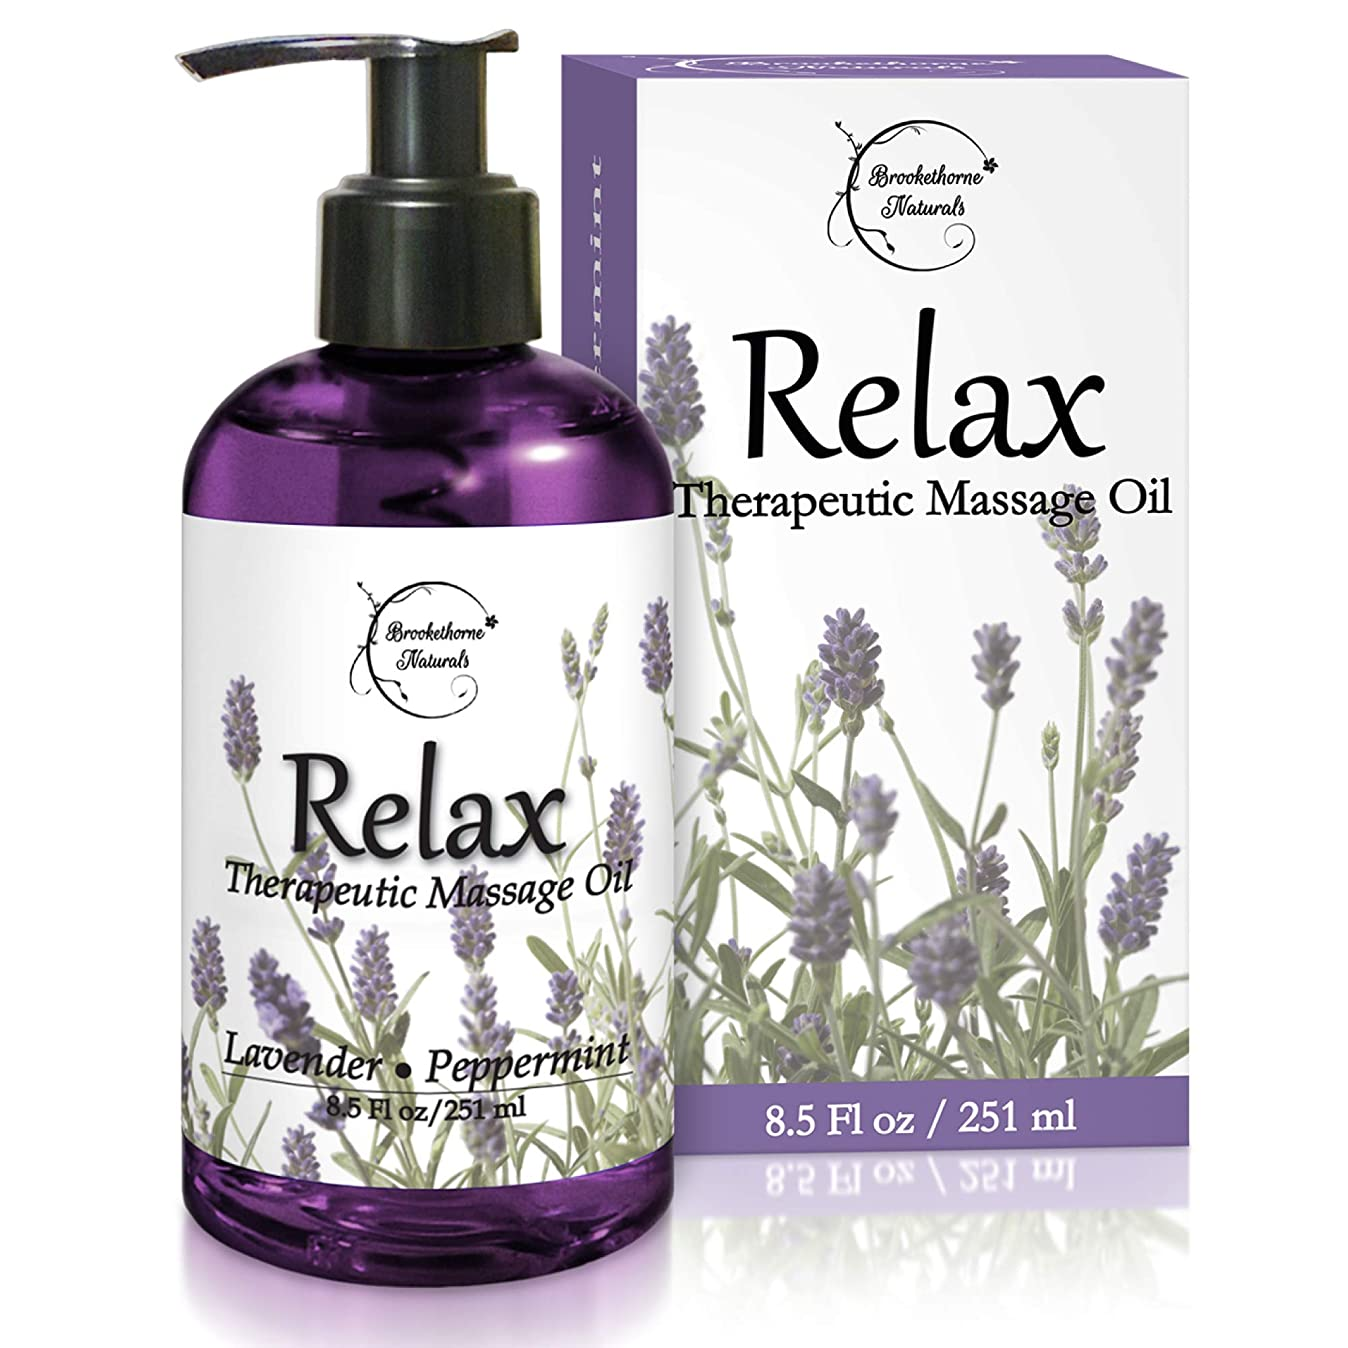 Relax Therapeutic Body Massage Oil - with Best Essential Oils for Sore Muscles & Stiffness – Lavender, Peppermint & Marjoram - All Natural - with Sweet Almond, Grapeseed & Jojoba Oil 8.5oz p0974334032